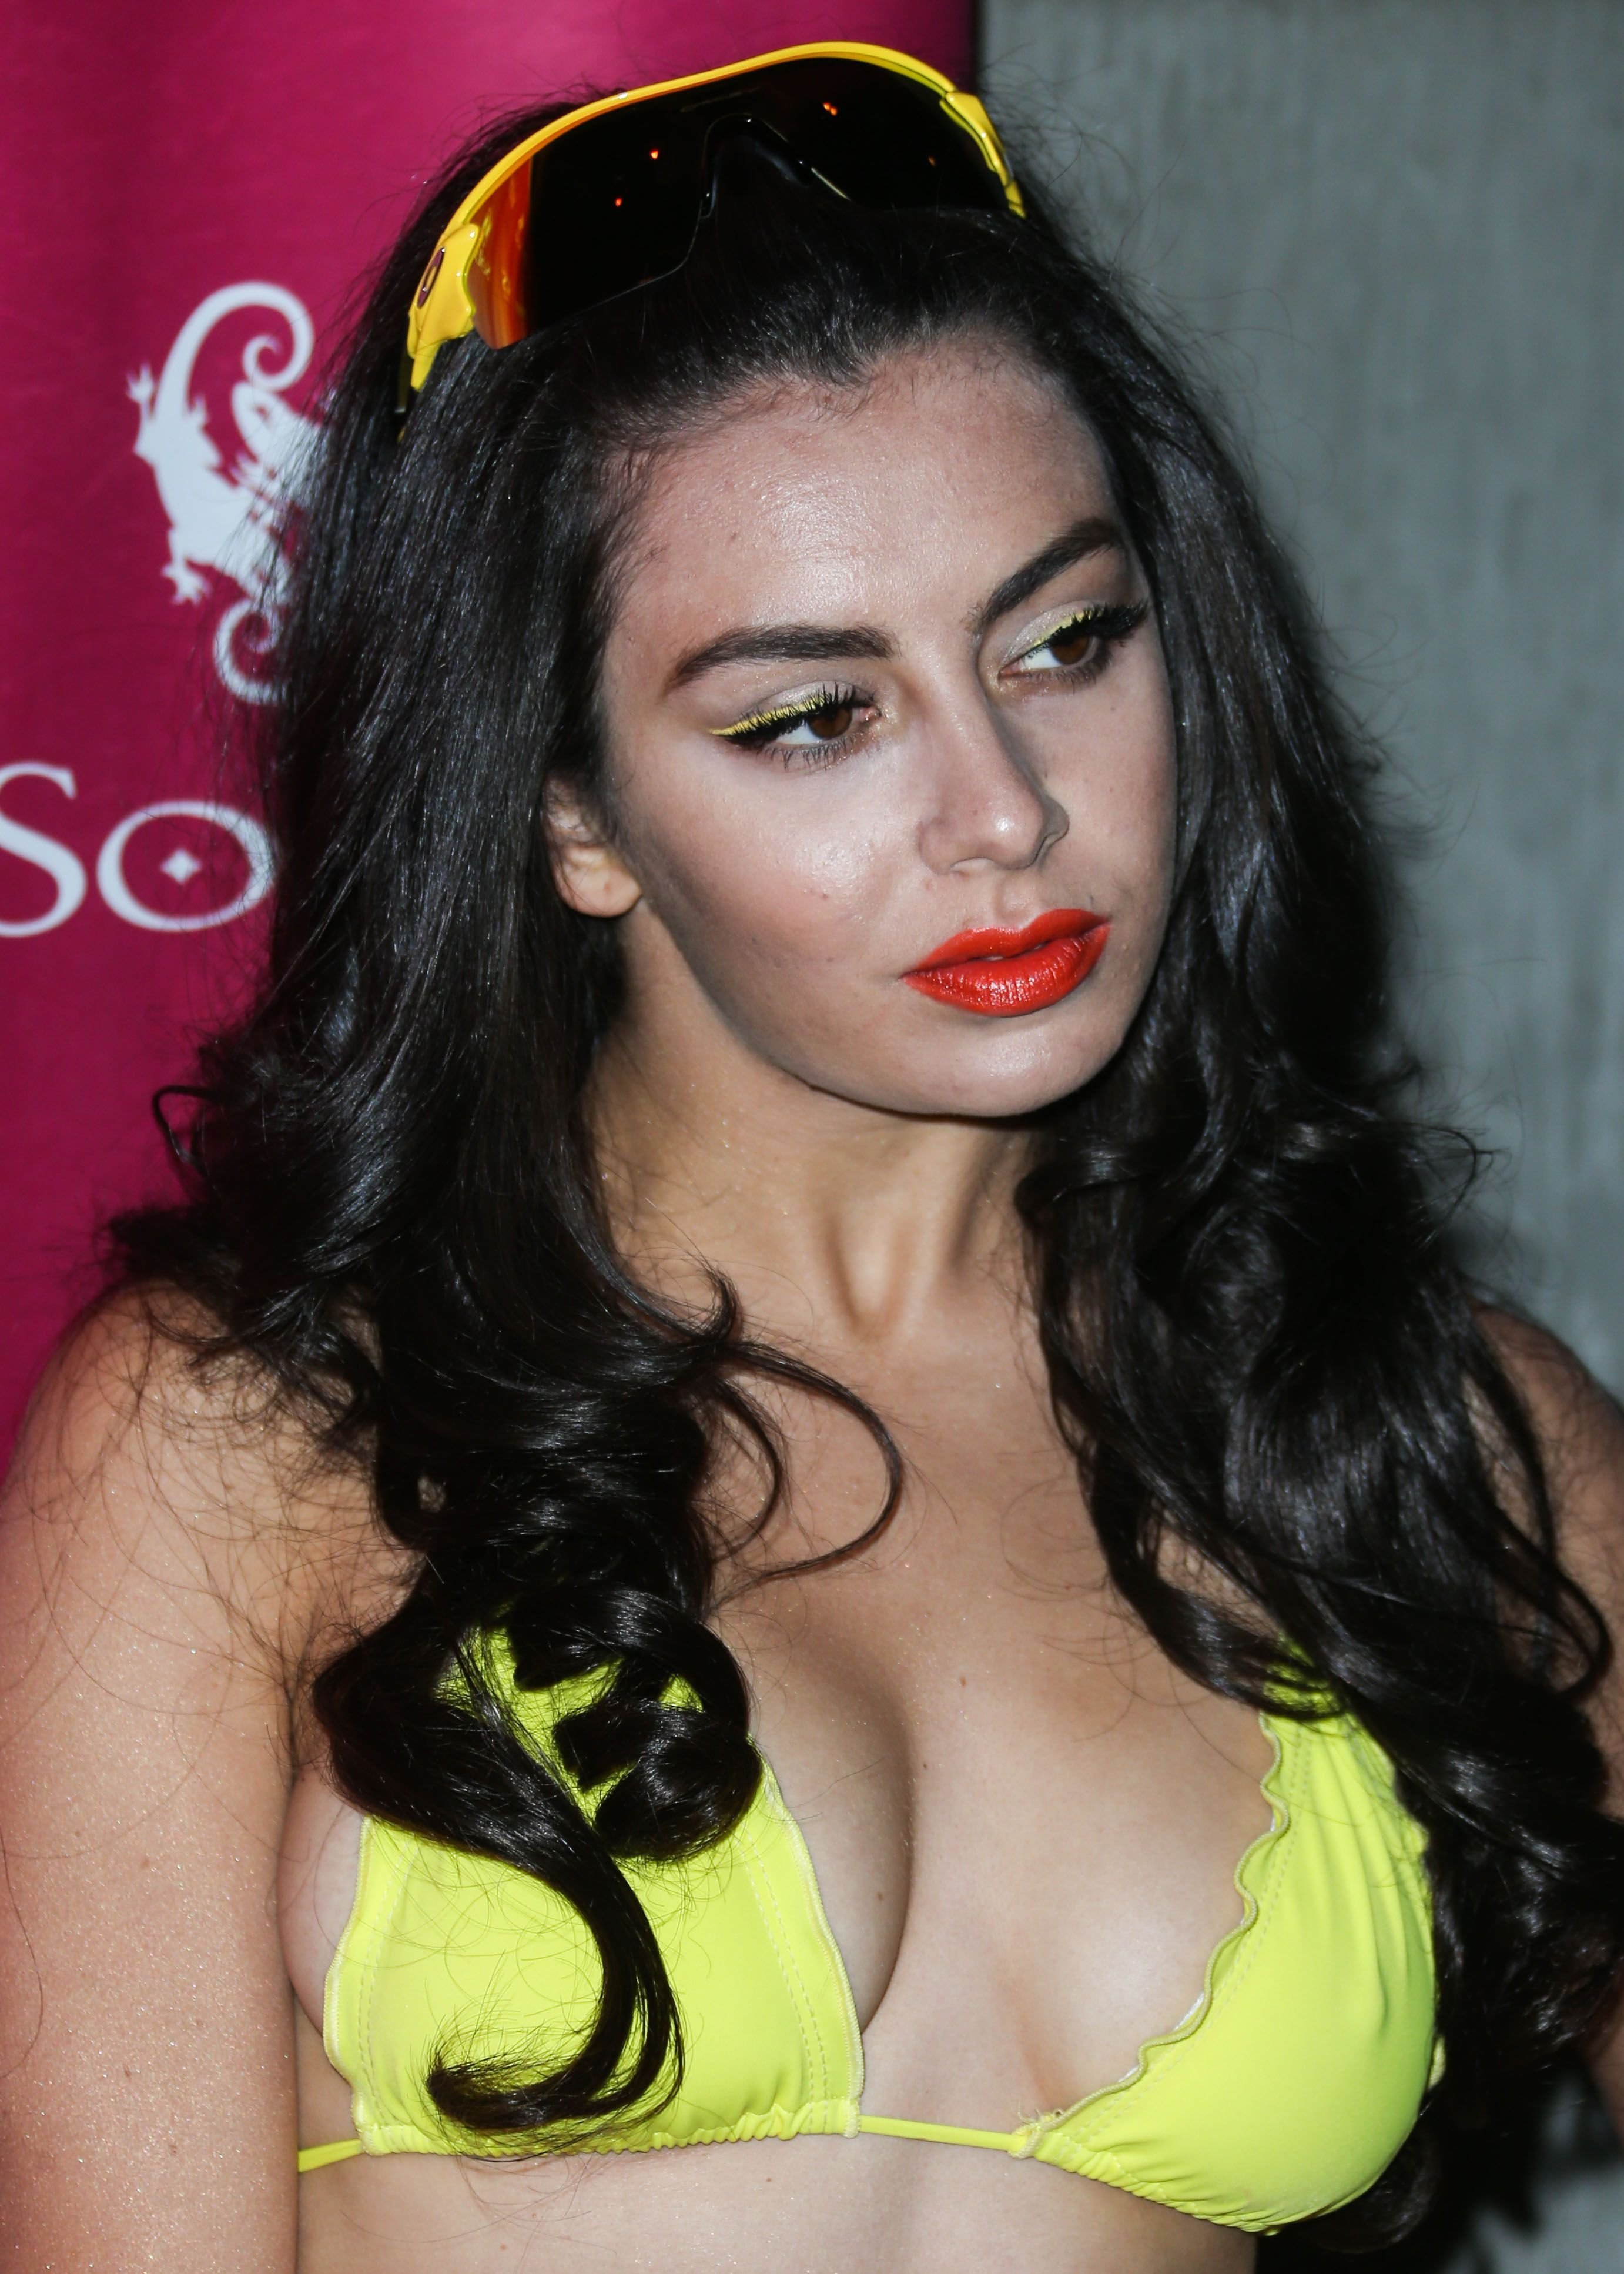 Sexy Photos Of Charli Xcx